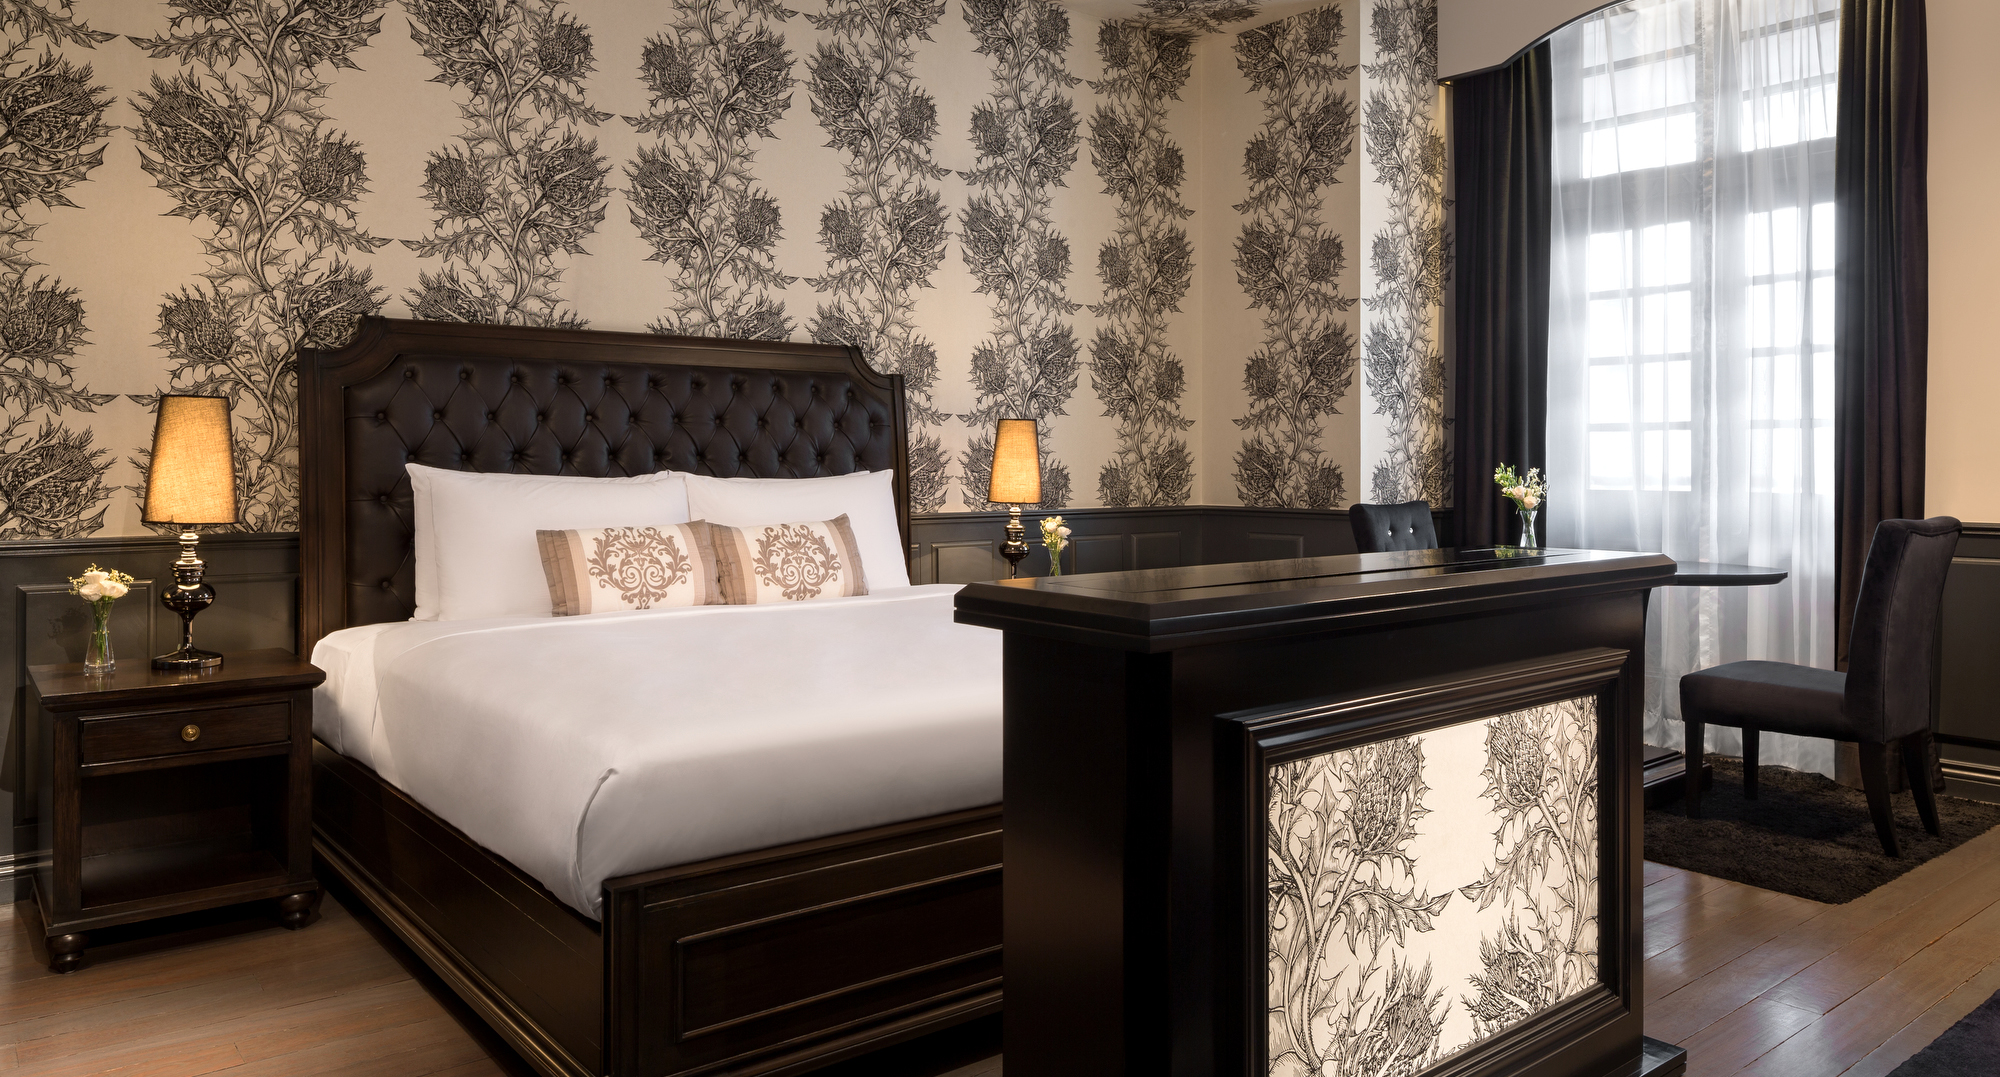 The Most Luxurious Hotel Suites In Hong Kong, by AD interior design trends Let Spring In With These 5 Interior Design Trends Hullett House Hotel Suites interior design trends Let Spring In With These 5 Interior Design Trends Hullett House Hotel Suites